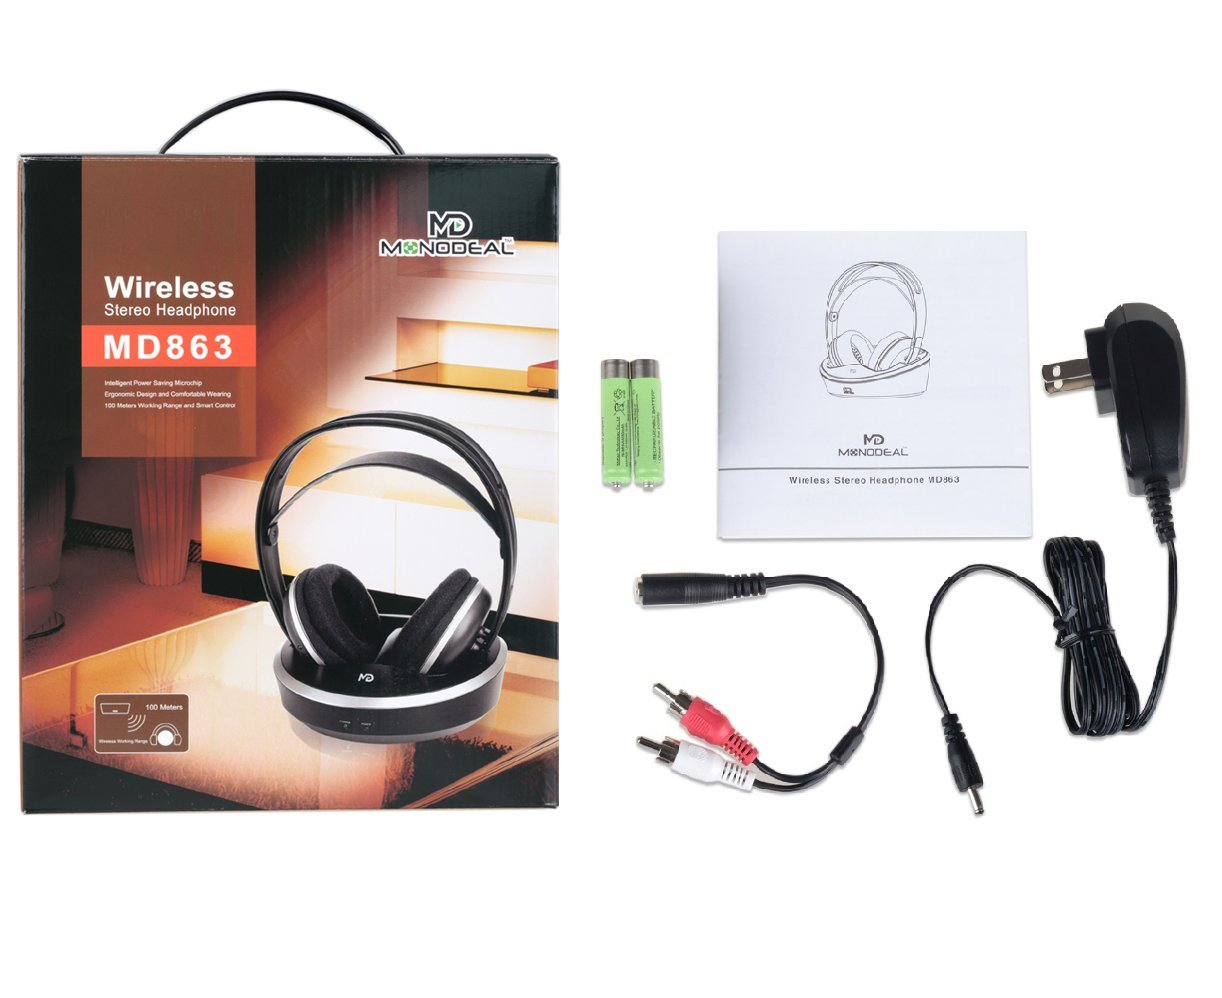 Wireless Universal TV Headphones, Monodeal Over-Ear Stereo RF Headphones with Charging Dock, Low Latency Volume Adjustable for Gaming TV PC Mobile, 25hr Battery Sound -1 Year Warranty by MONODEAL (Image #7)